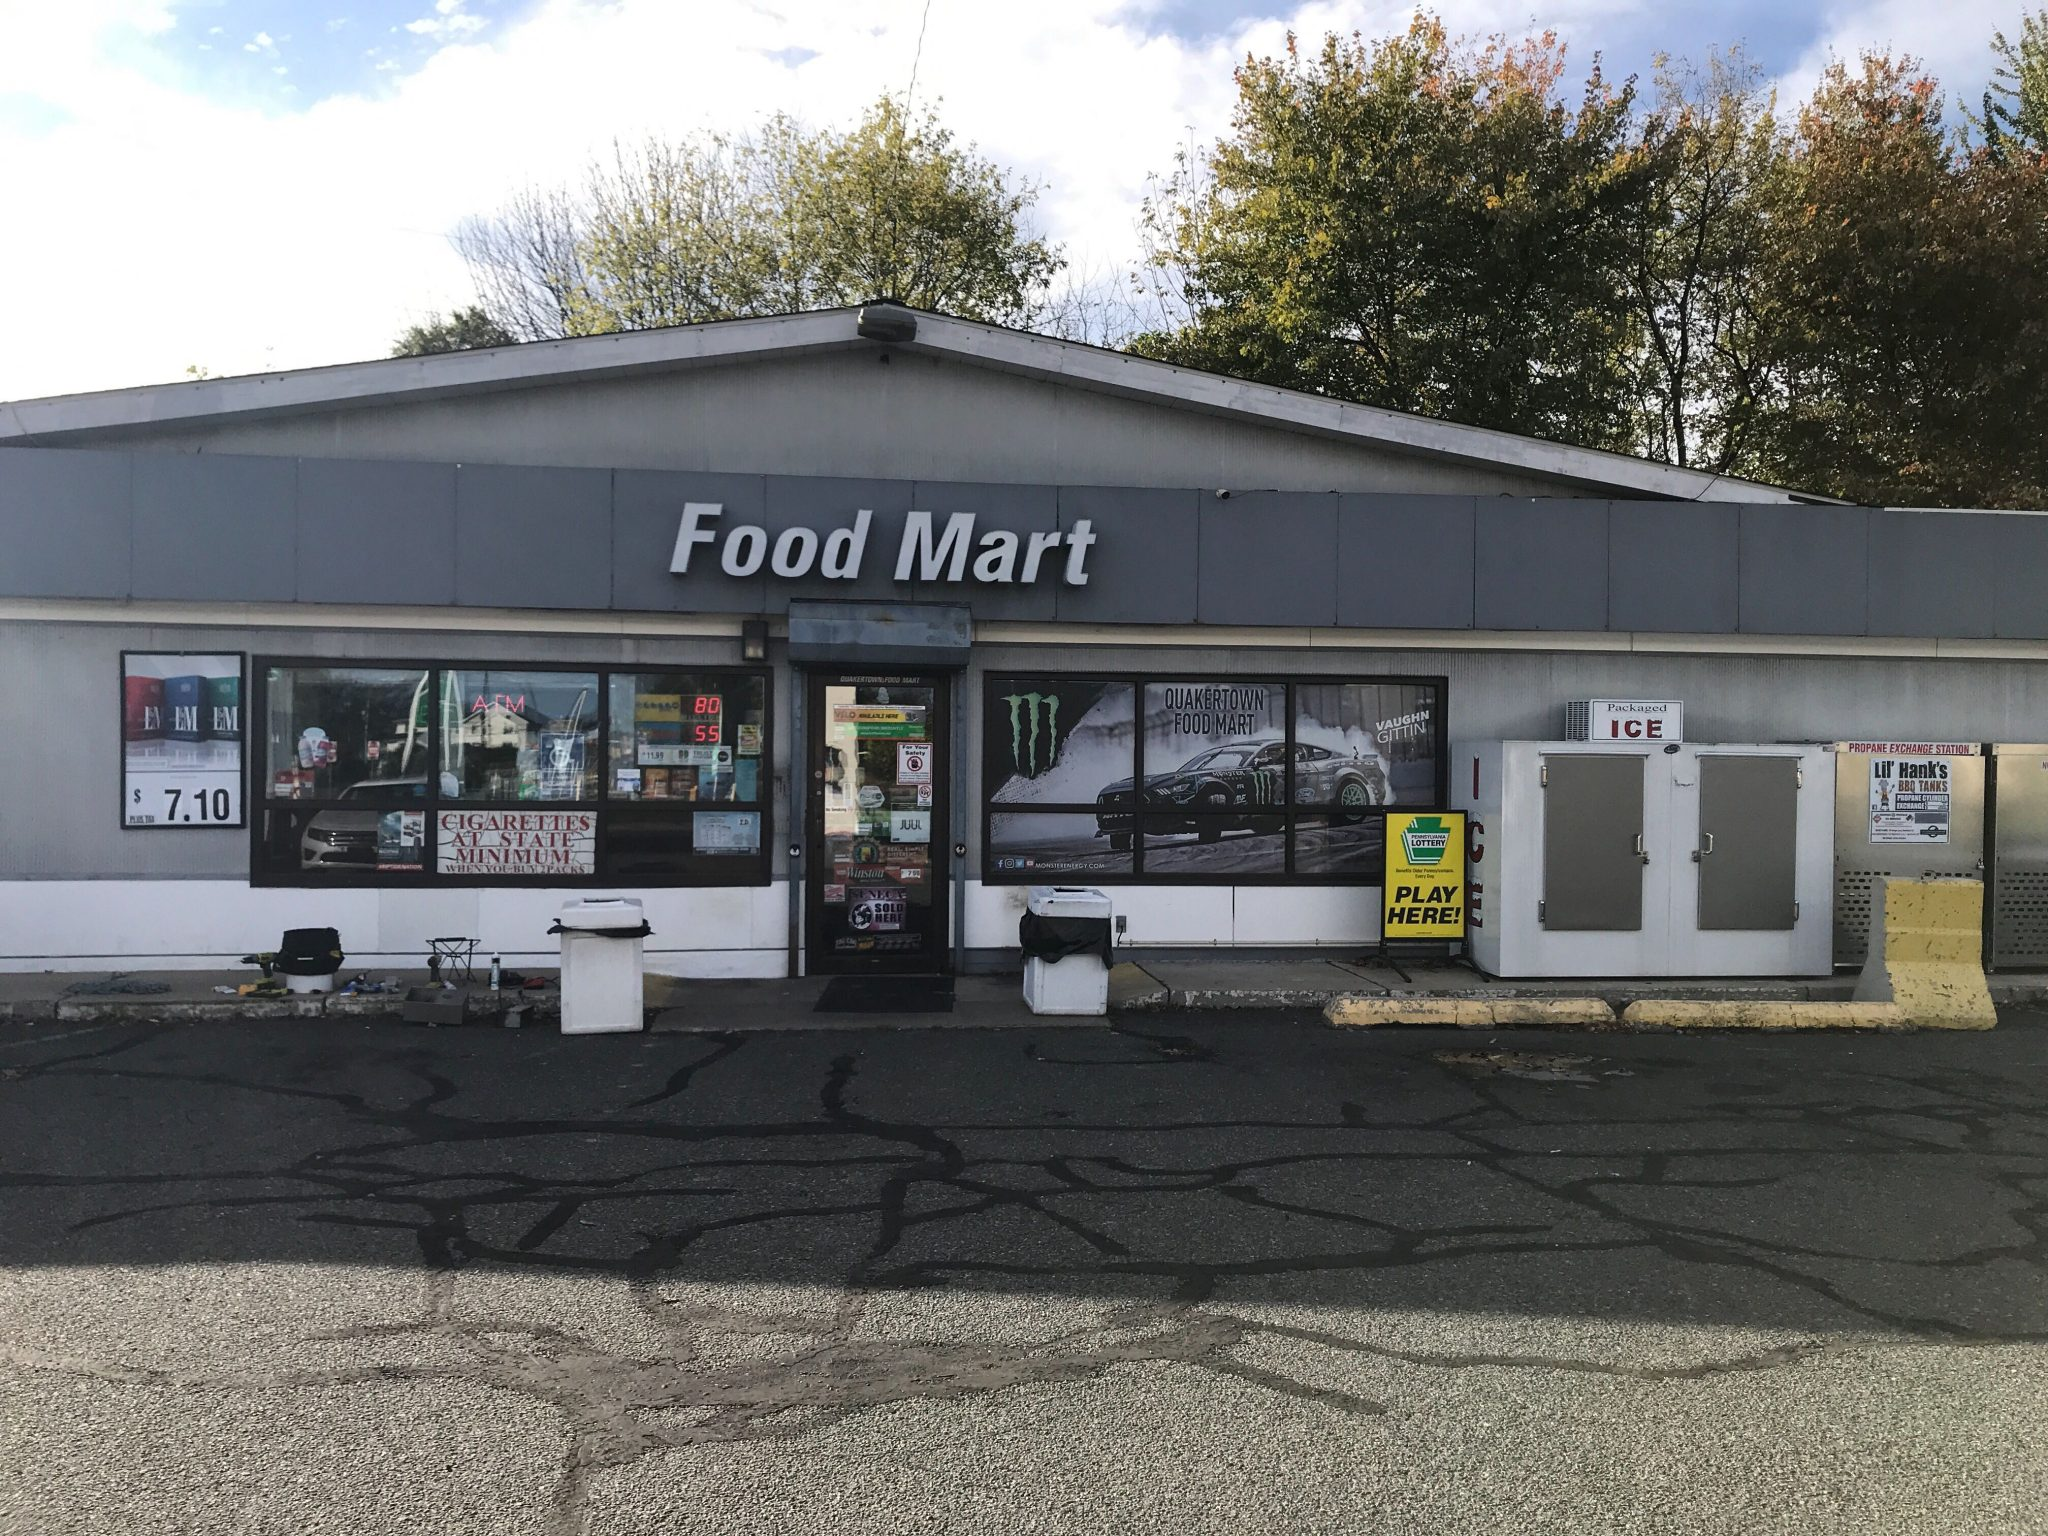 Bitcoin ATM Quakertown Foodmart ChainByes operated by Hippo Kiosk